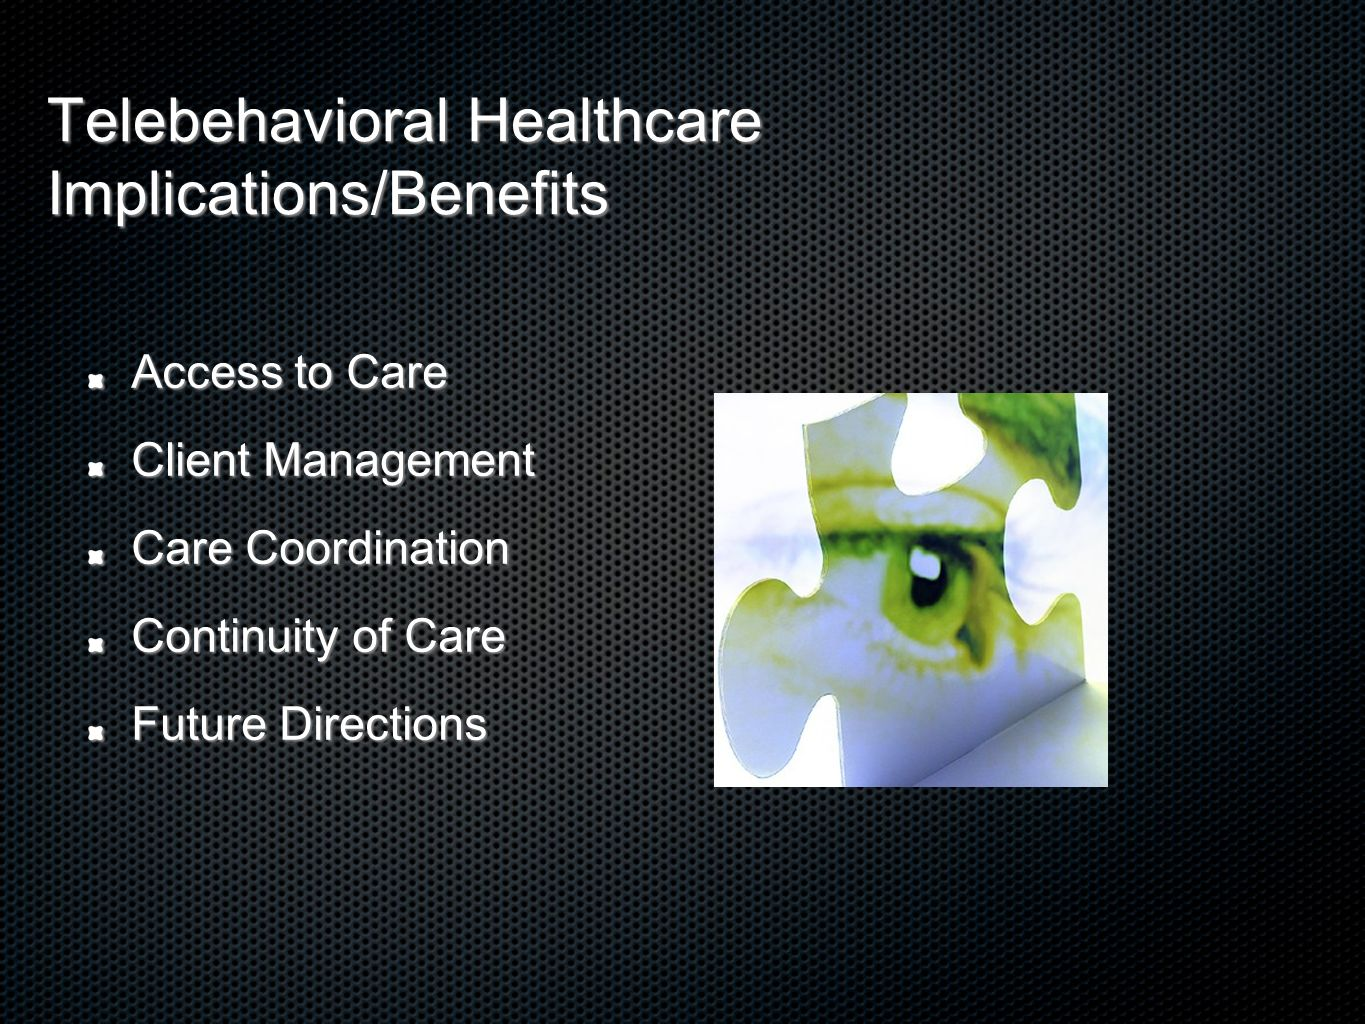 Telebehavioral Healthcare Implications/Benefits Access to Care Client Management Care Coordination Continuity of Care Future Directions